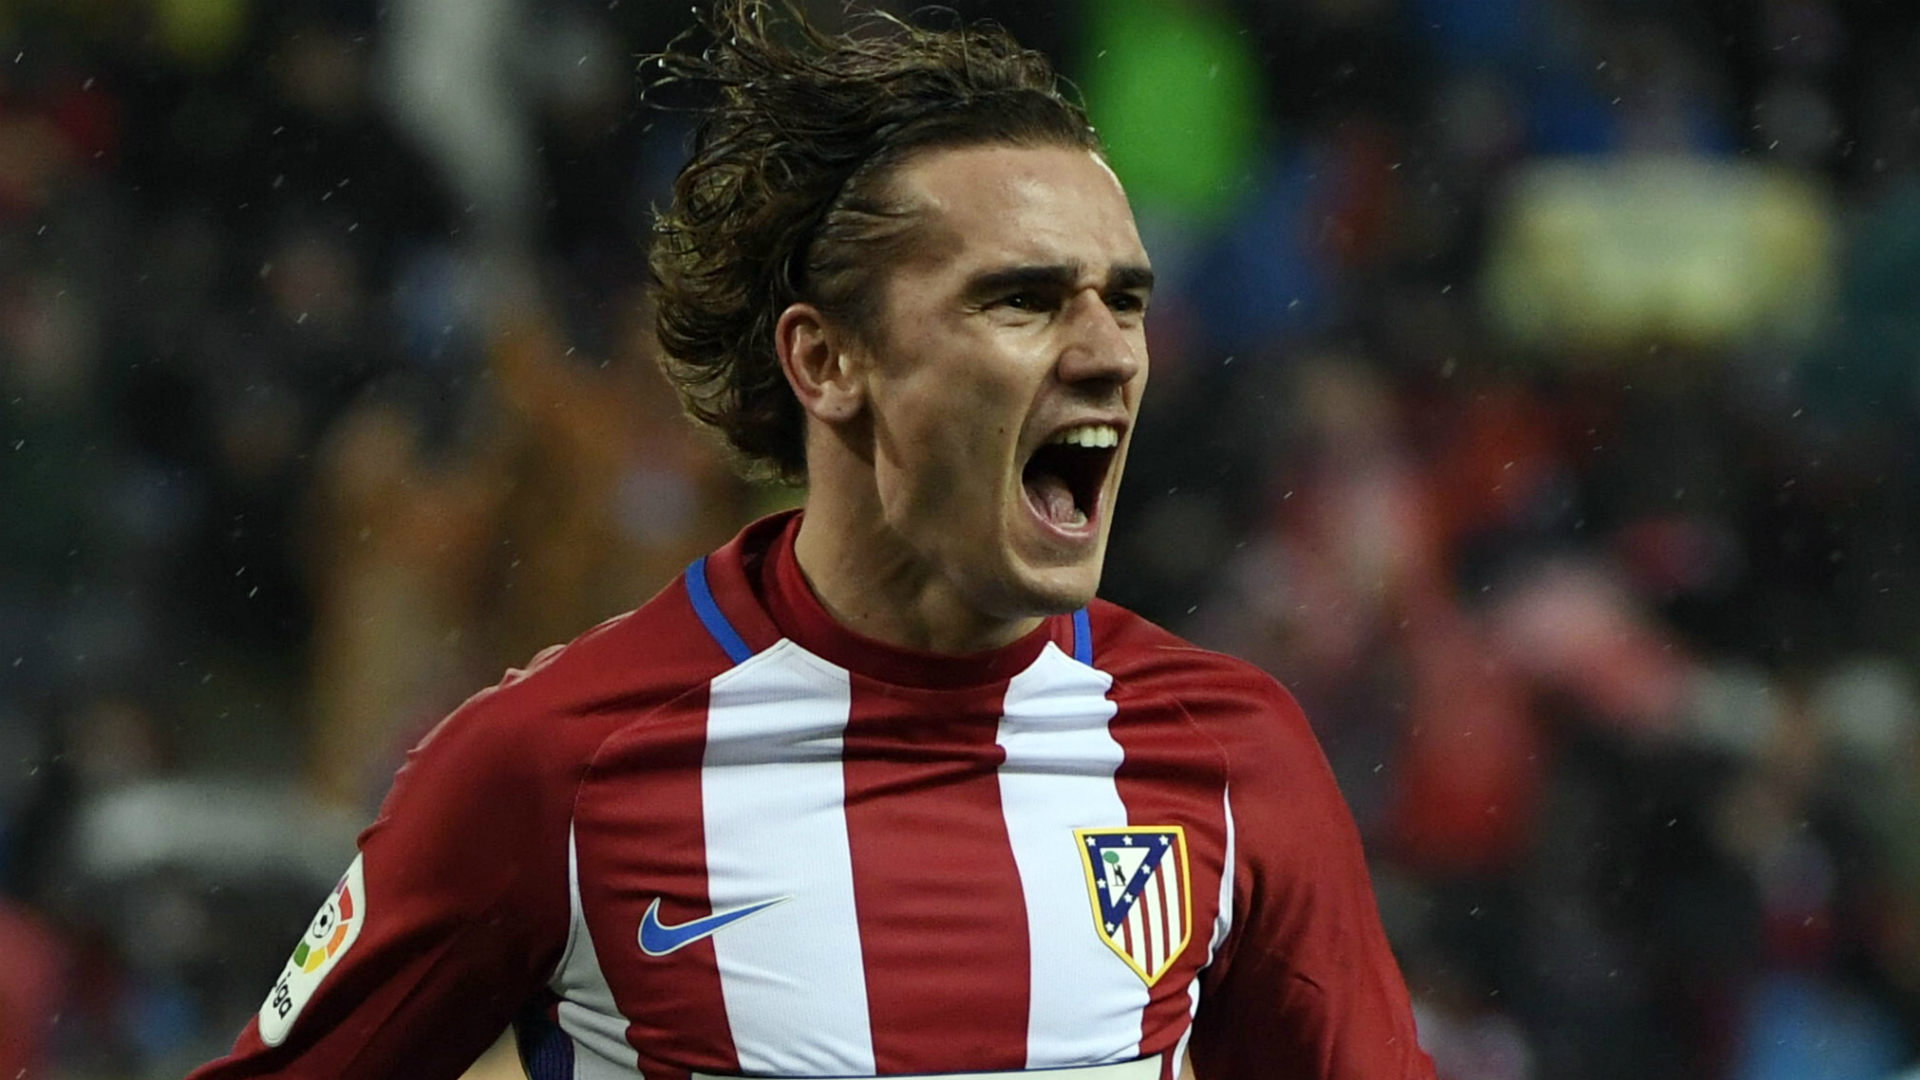 antoine griezmann becomes atletico madrid s all time leading scorer in europe